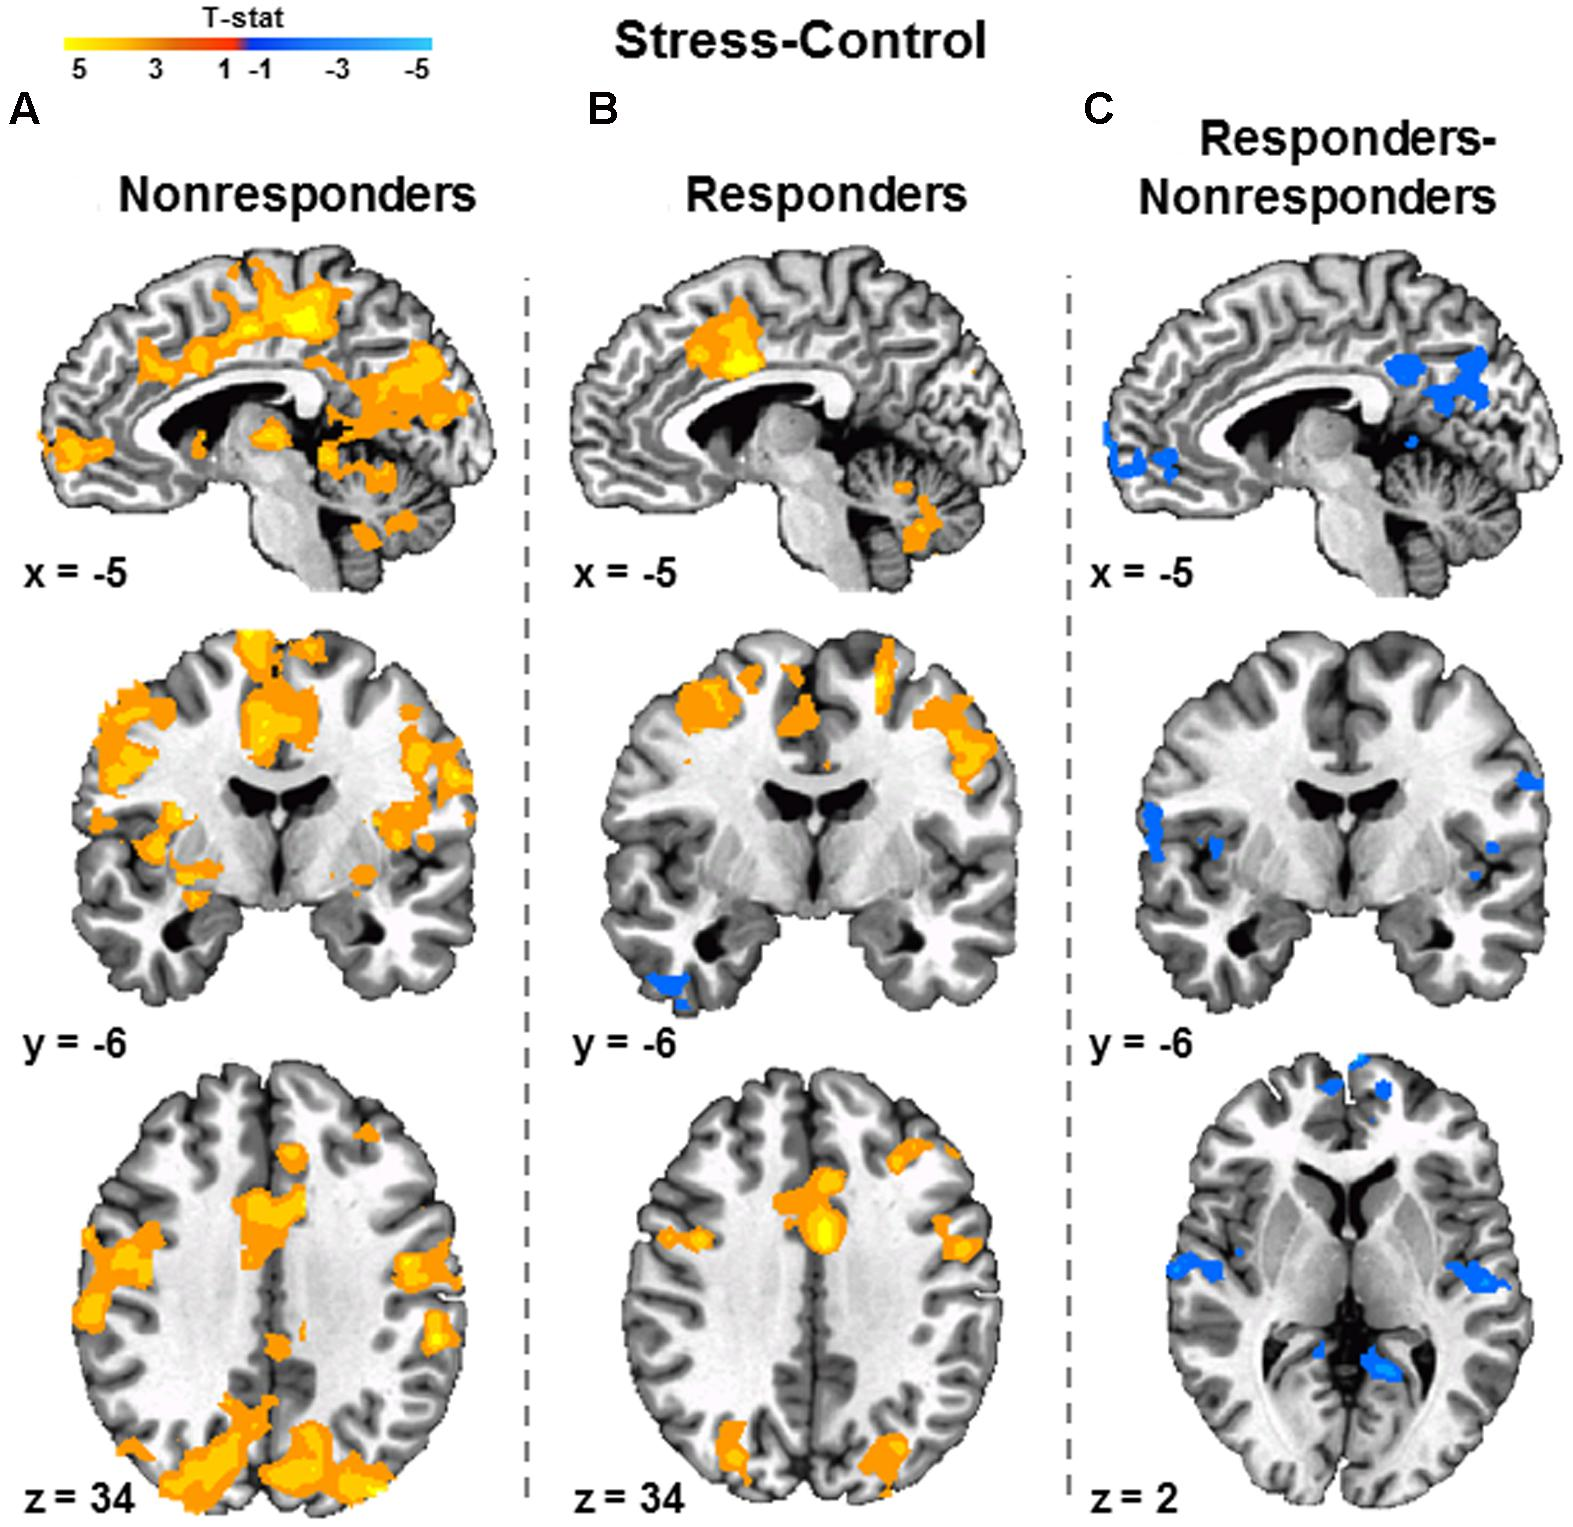 differential activation of hippocampus and amygdala relationship